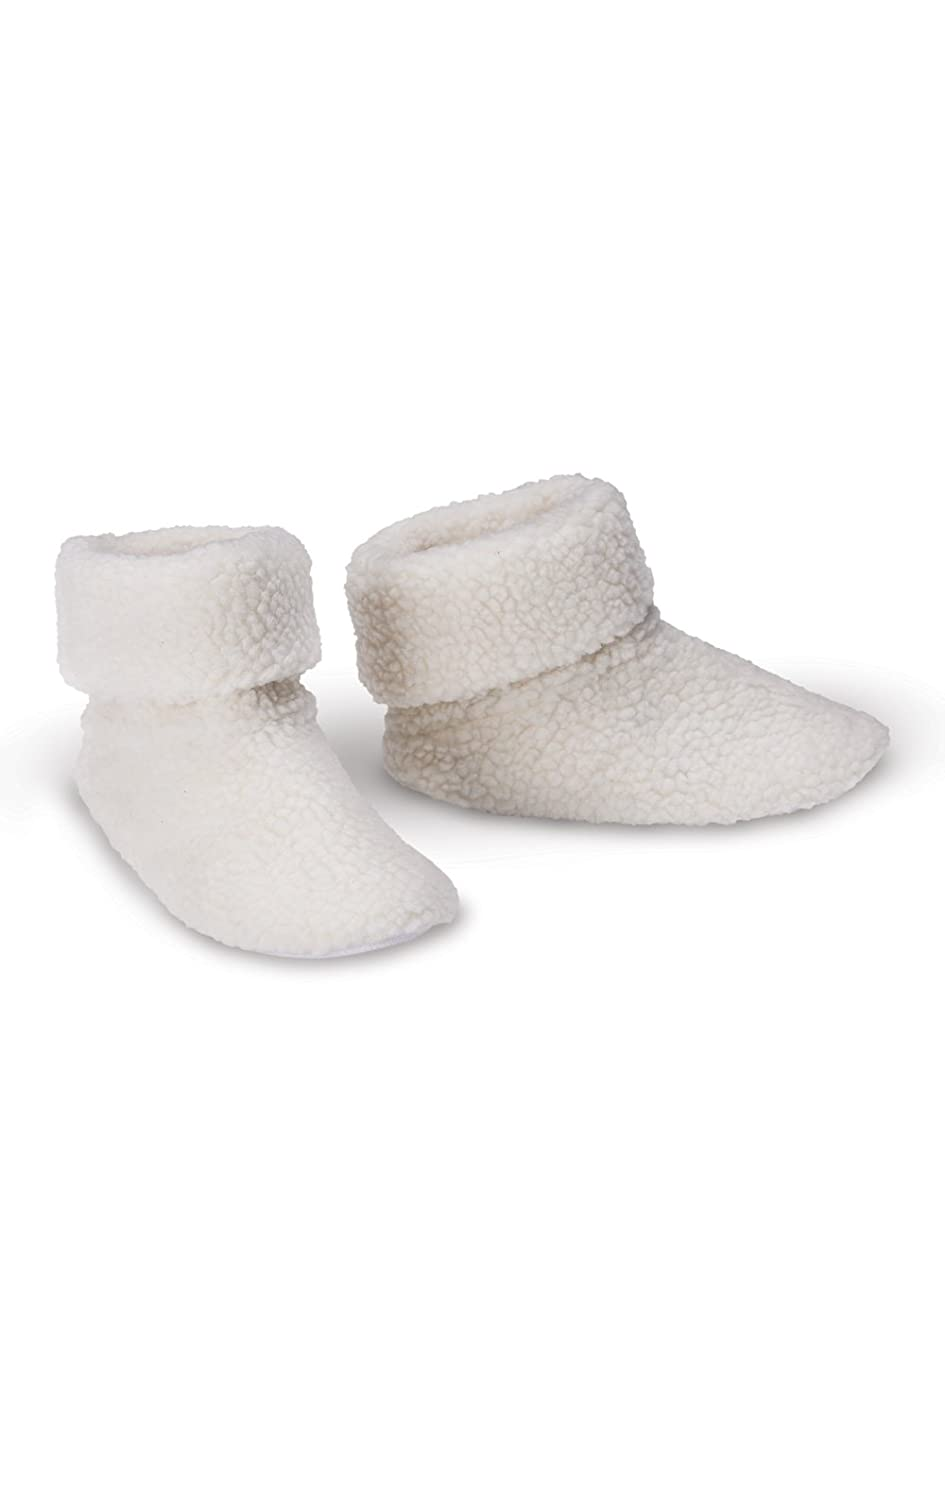 PajamaGram Womens Slippers Warm Sherpa Womens Bootie Slippers Off White